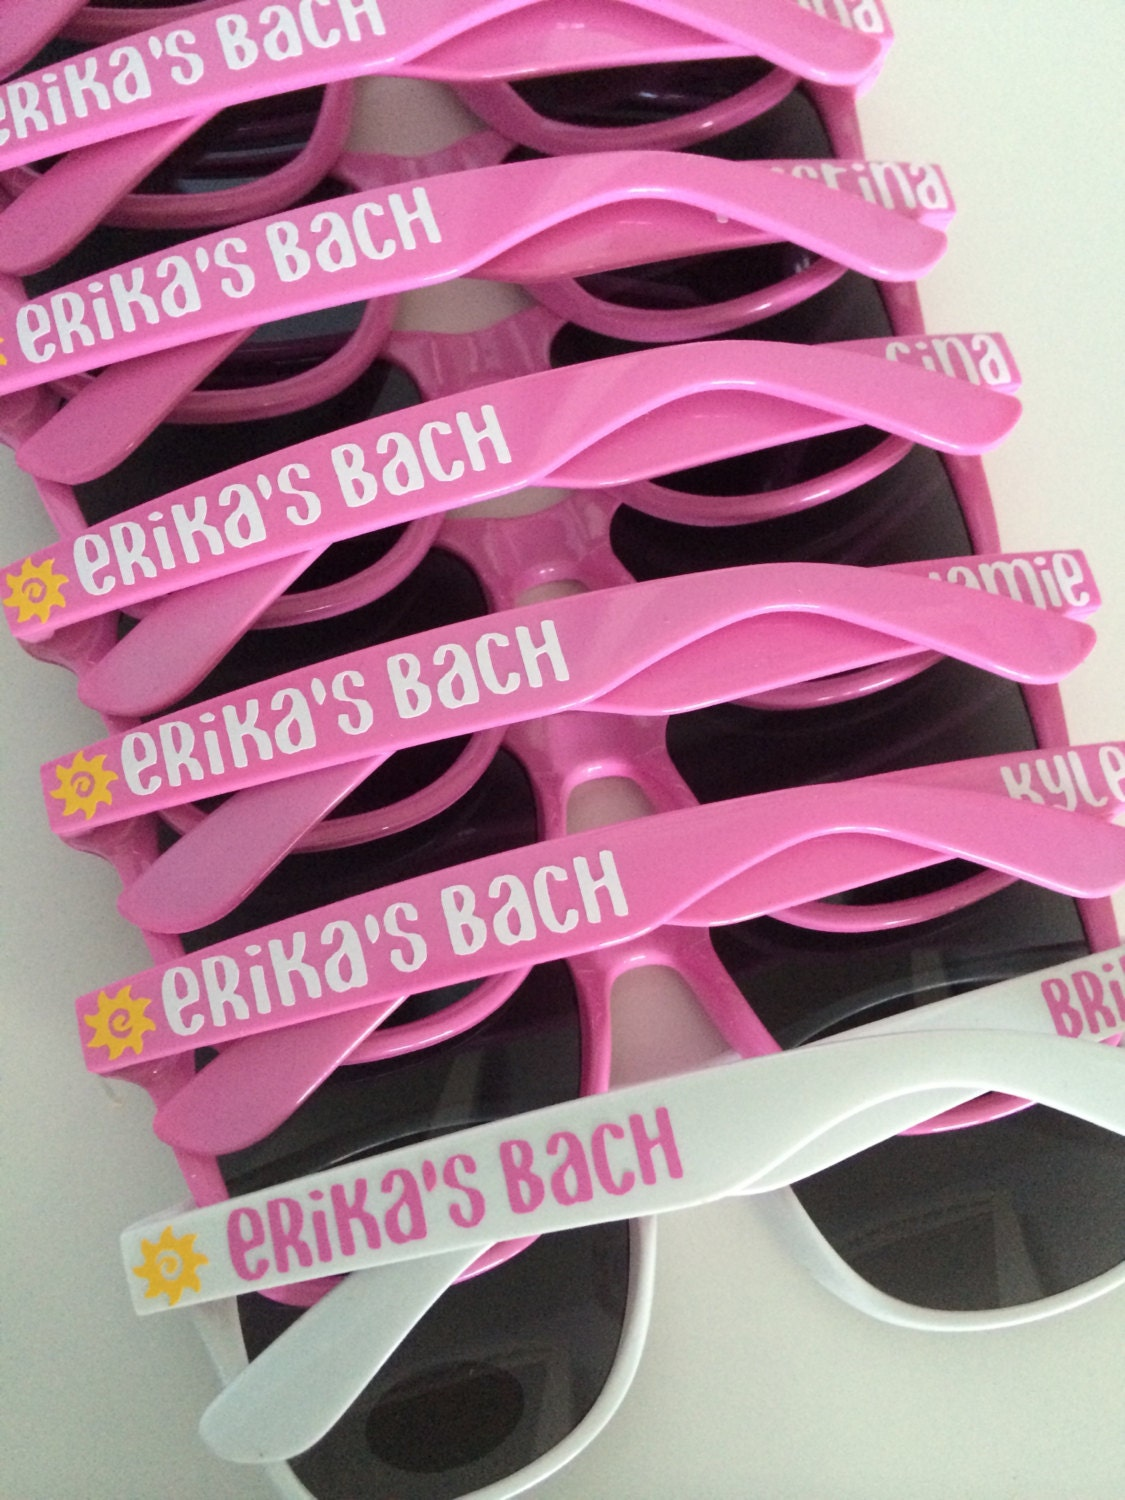 Cheap Personalized Sunglasses Wedding Favors | City of Kenmore ...